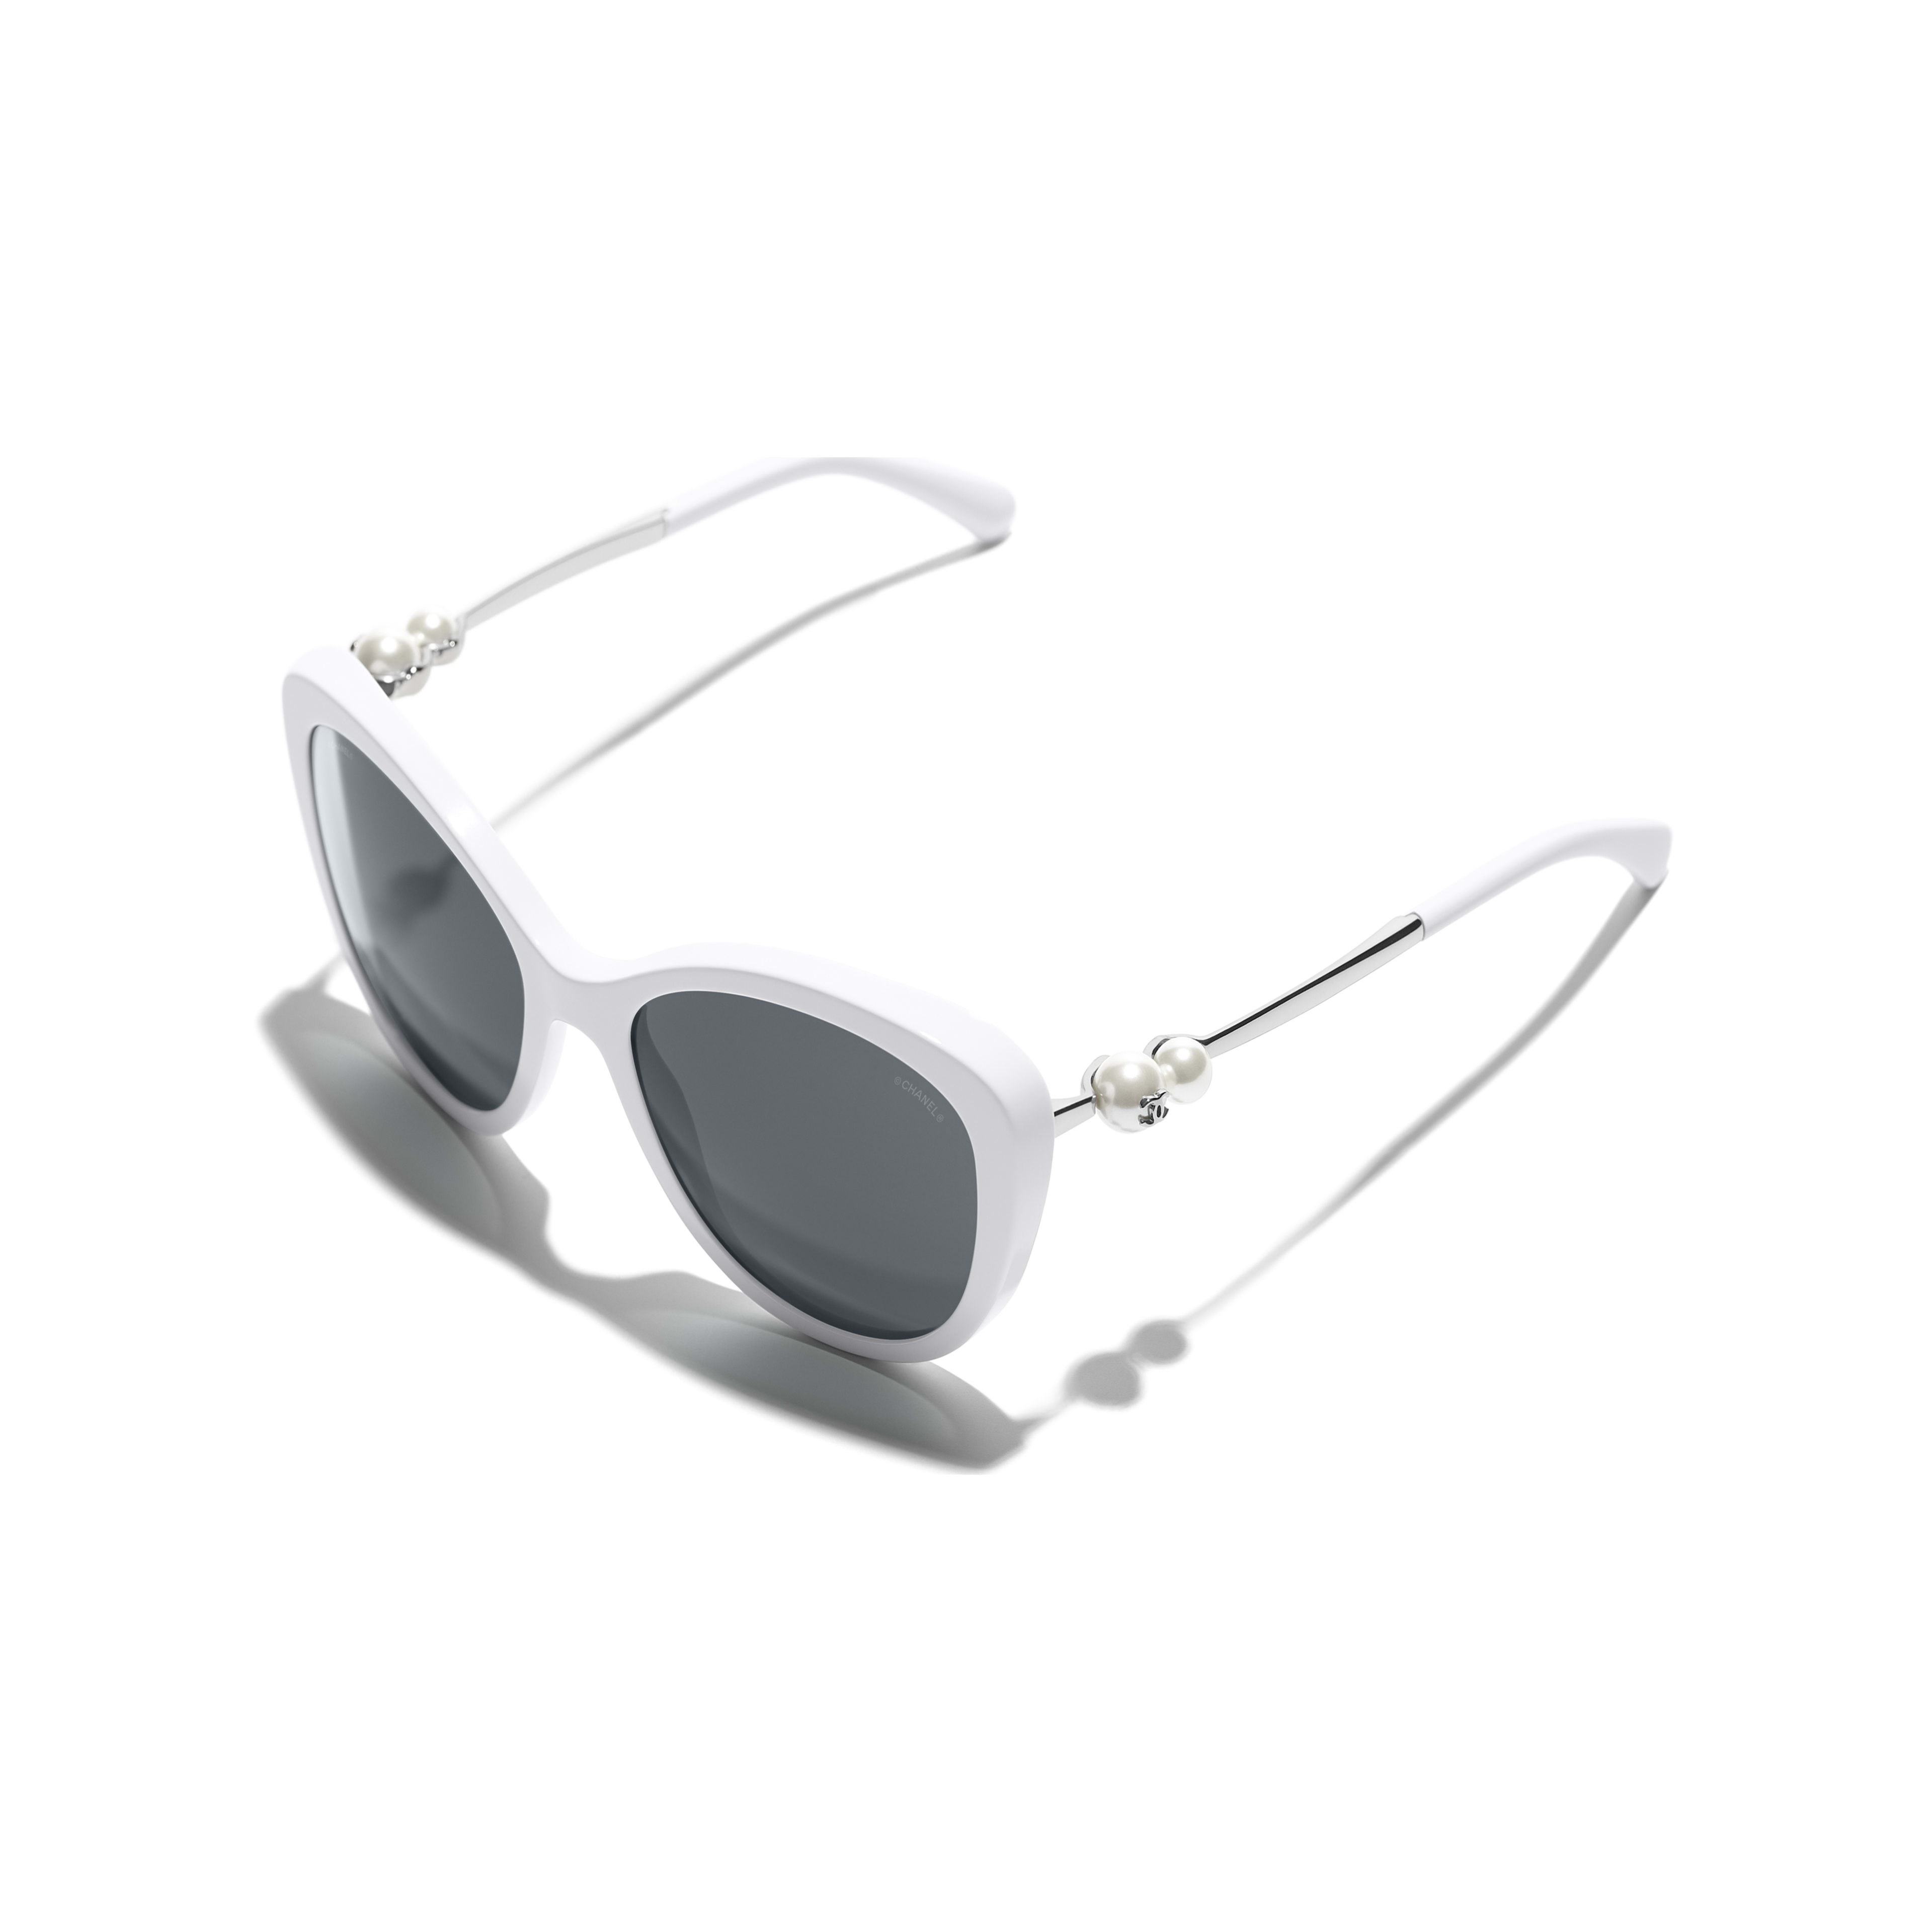 Butterfly Sunglasses - White - Acetate & Imitation Pearls - Extra view - see full sized version